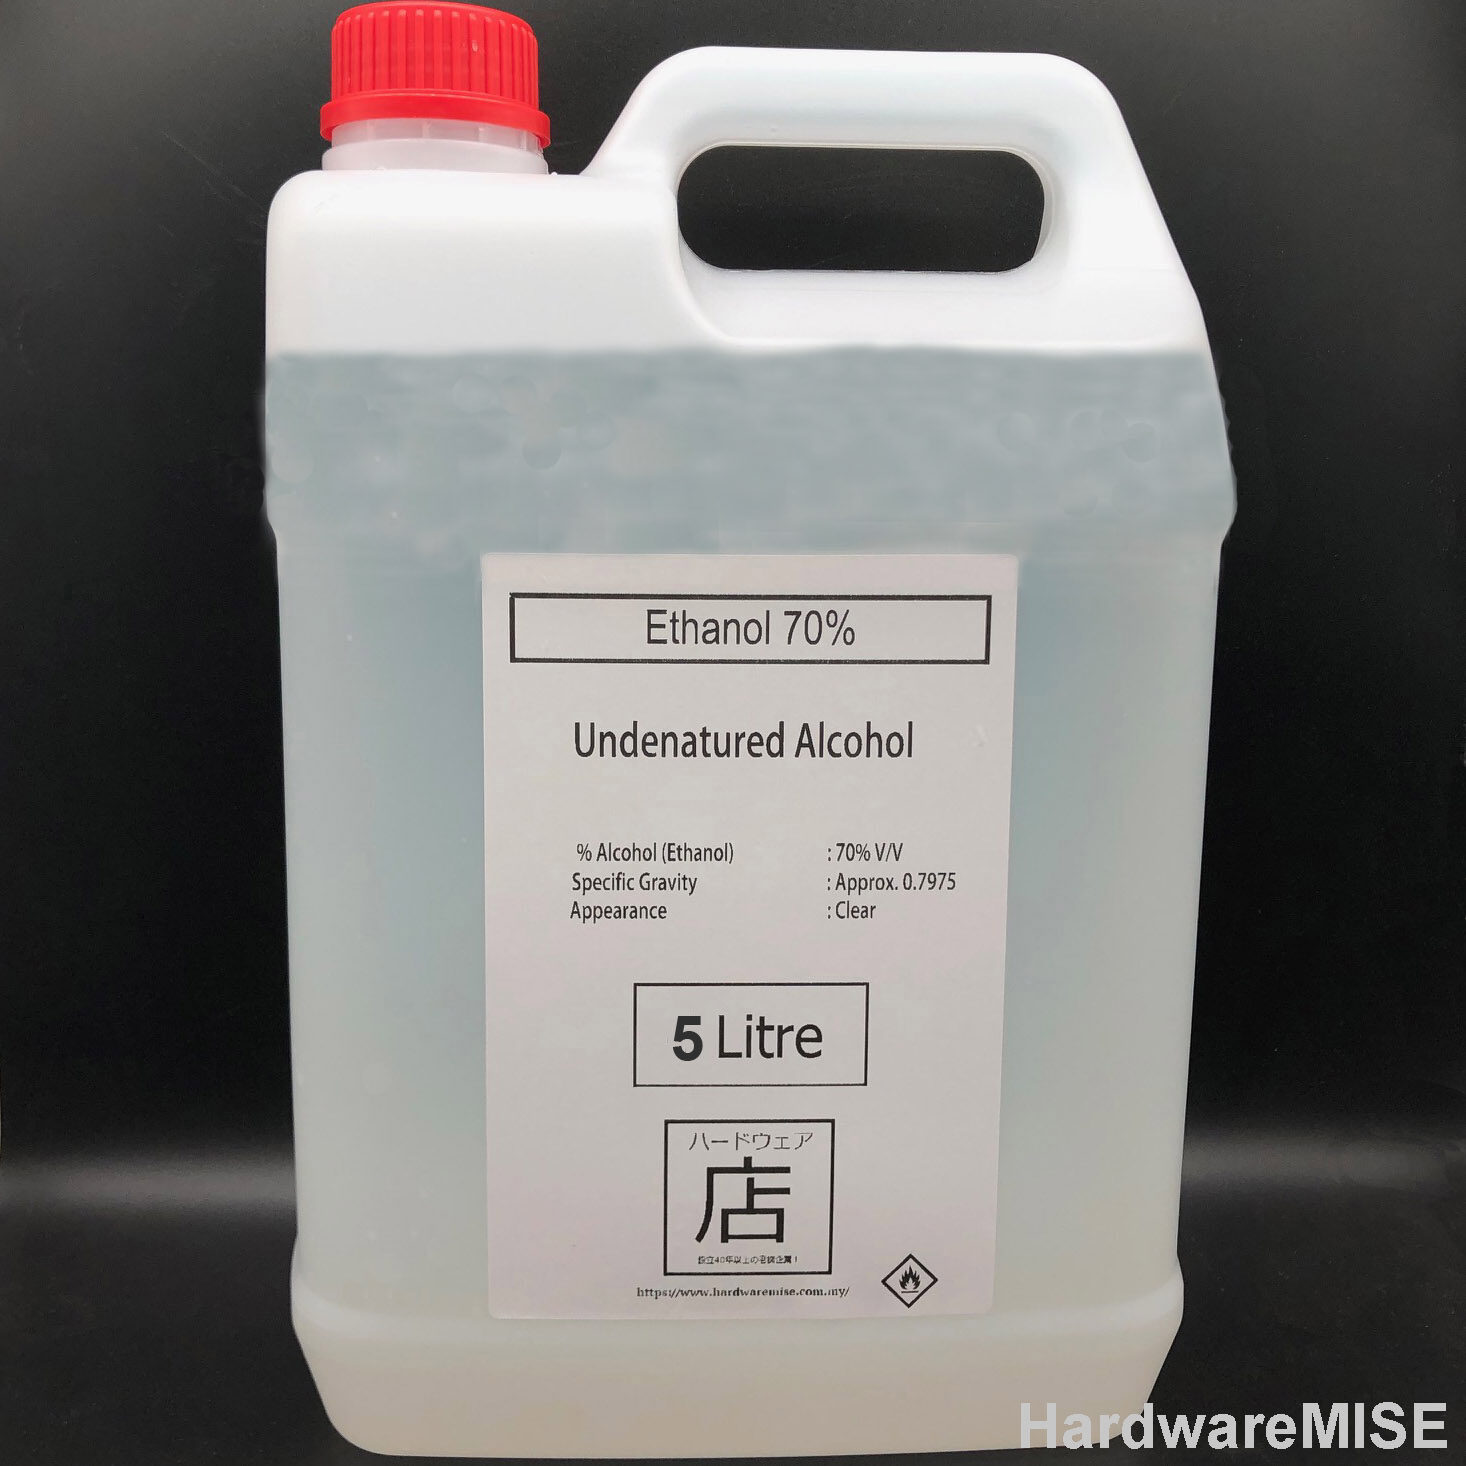 Ethanol 70% Sanitizer Food Grade Undenatured Ethyl Alcohol Potable Alcohol Disinfectant 消毒 乙醇 5 Litre Malaysia Supplier